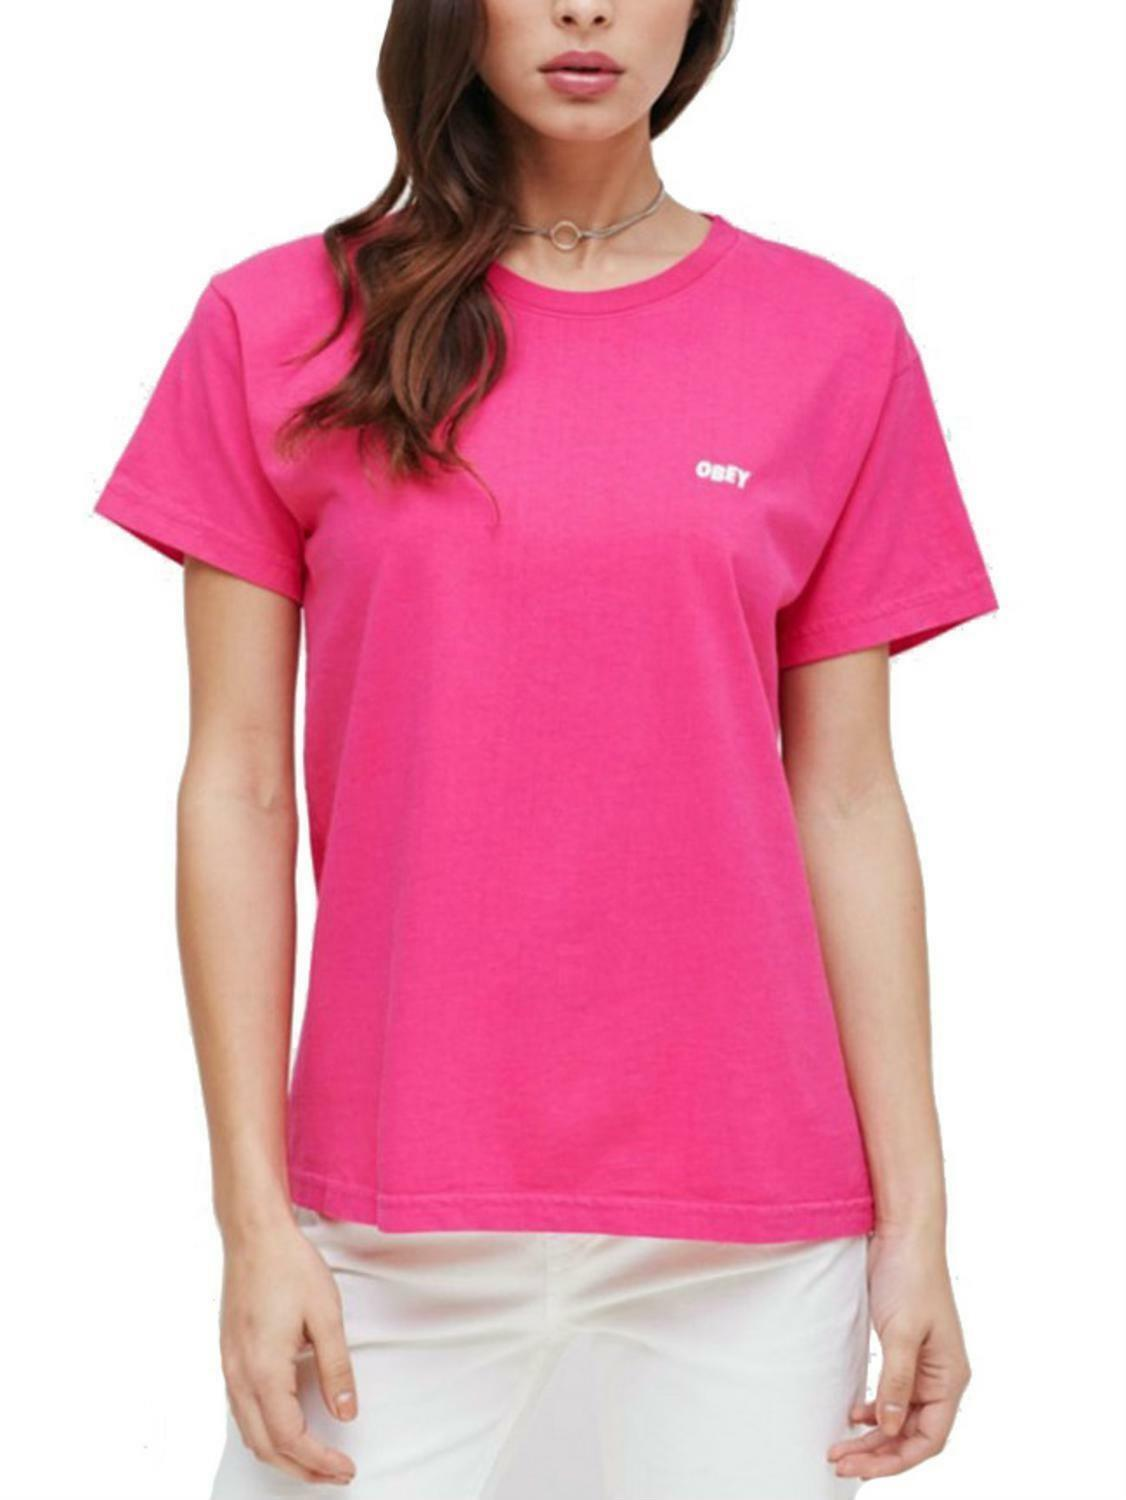 obey obey jumble lo t-shirt donna fuxia 22118w123